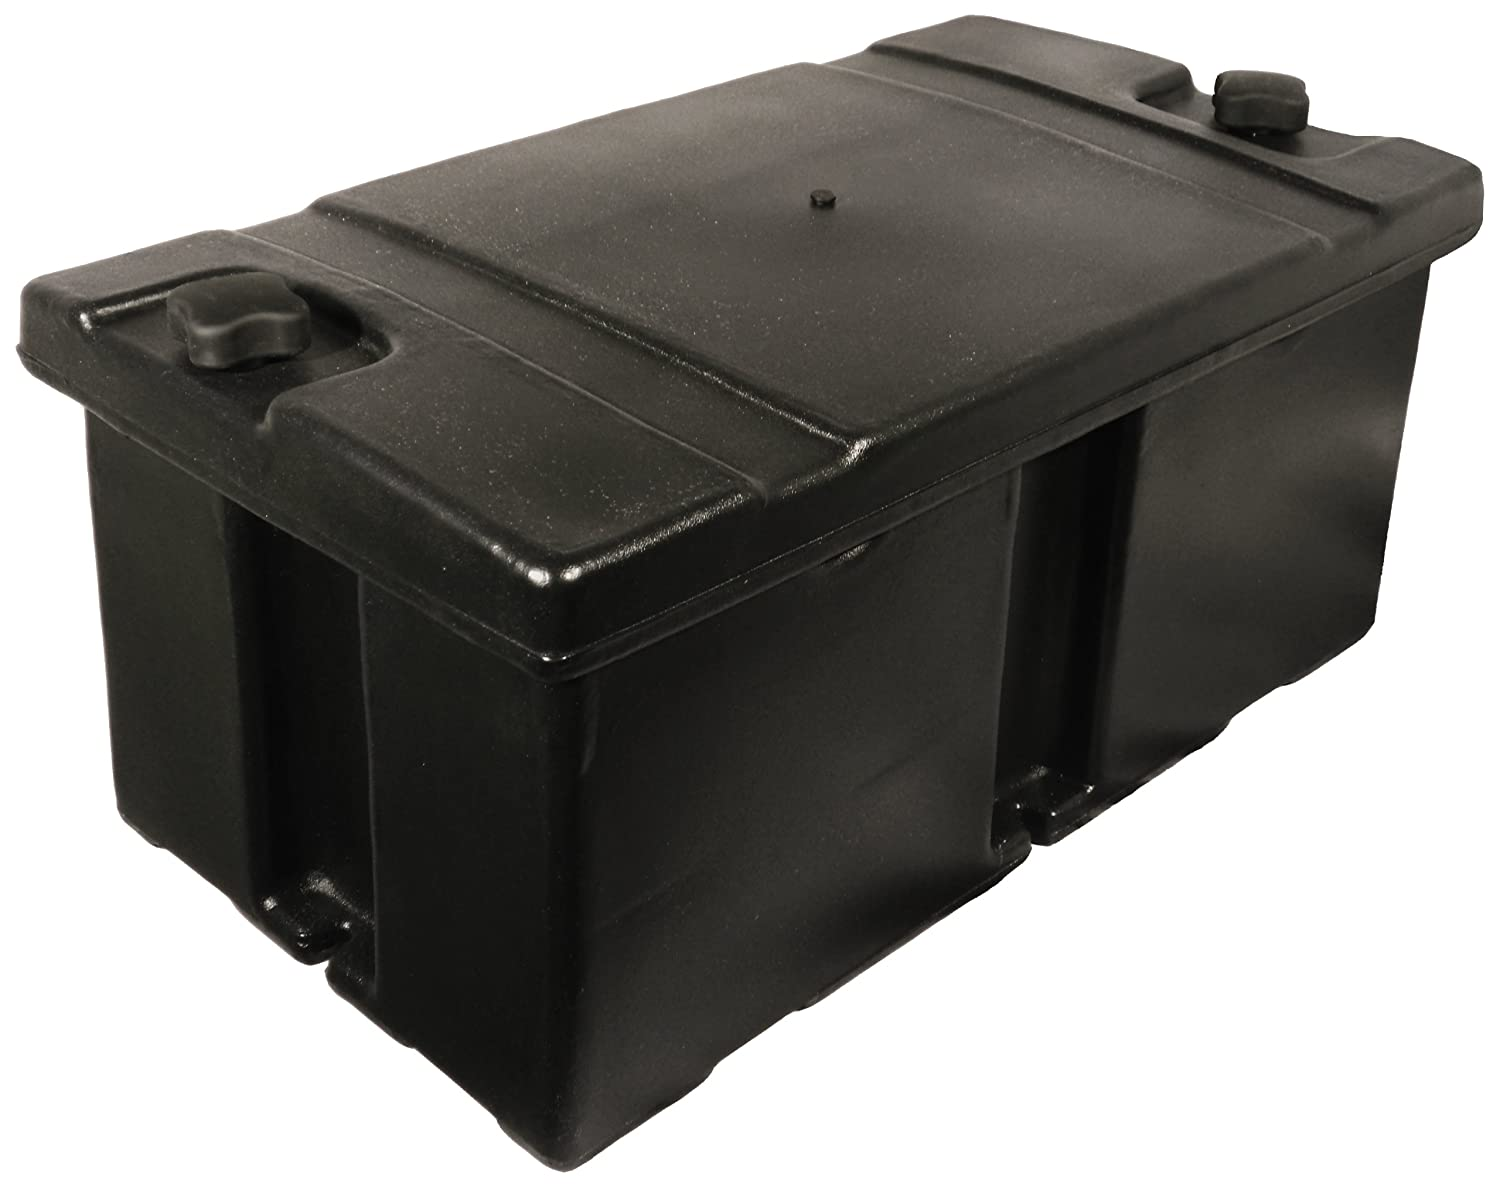 Moeller 4D Battery Box (Outside dimensions: 26.5 x 14.5 x 12.75-Inch) 042221